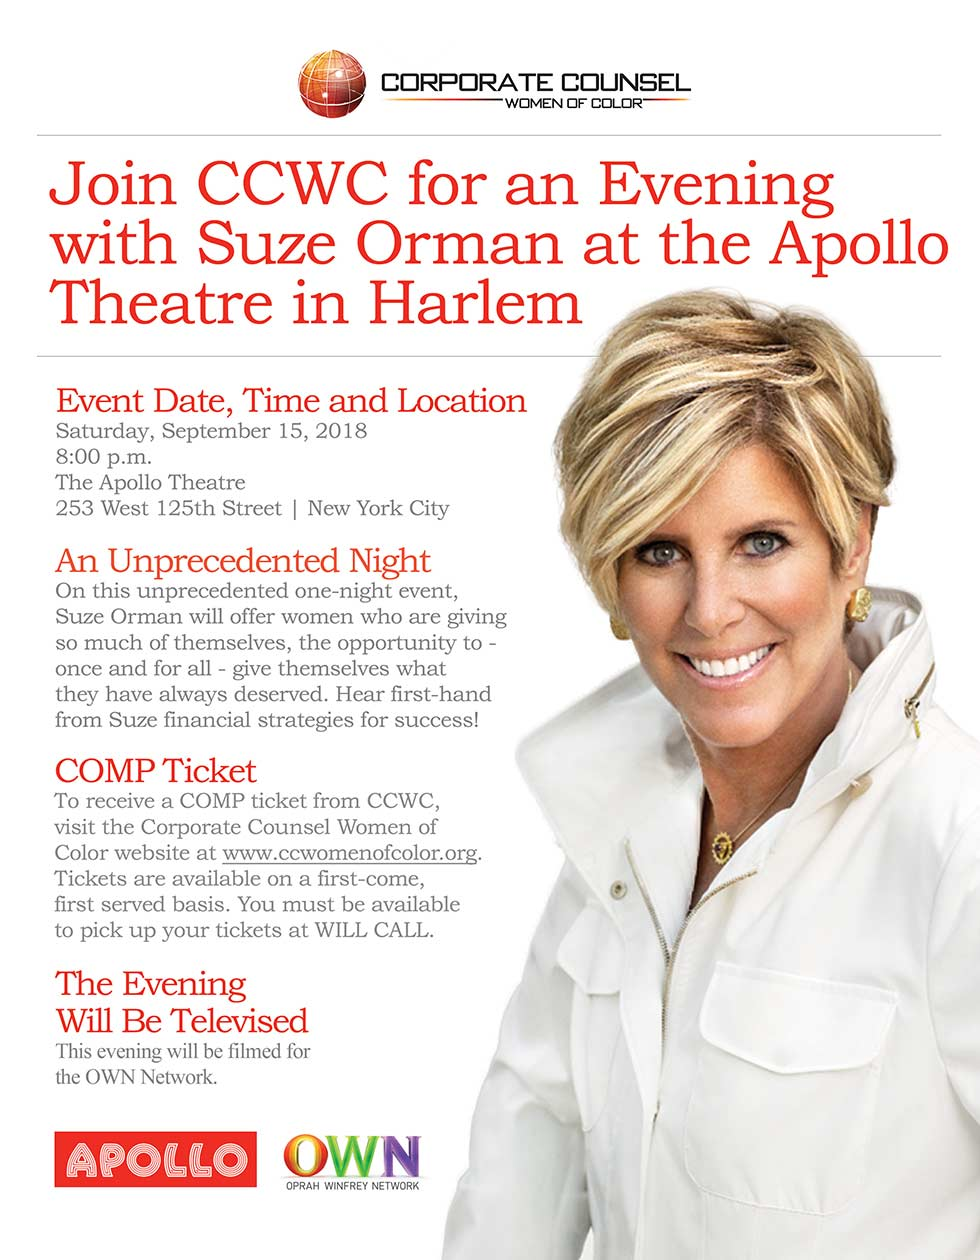 Evening with Suze Orman at the Apollo